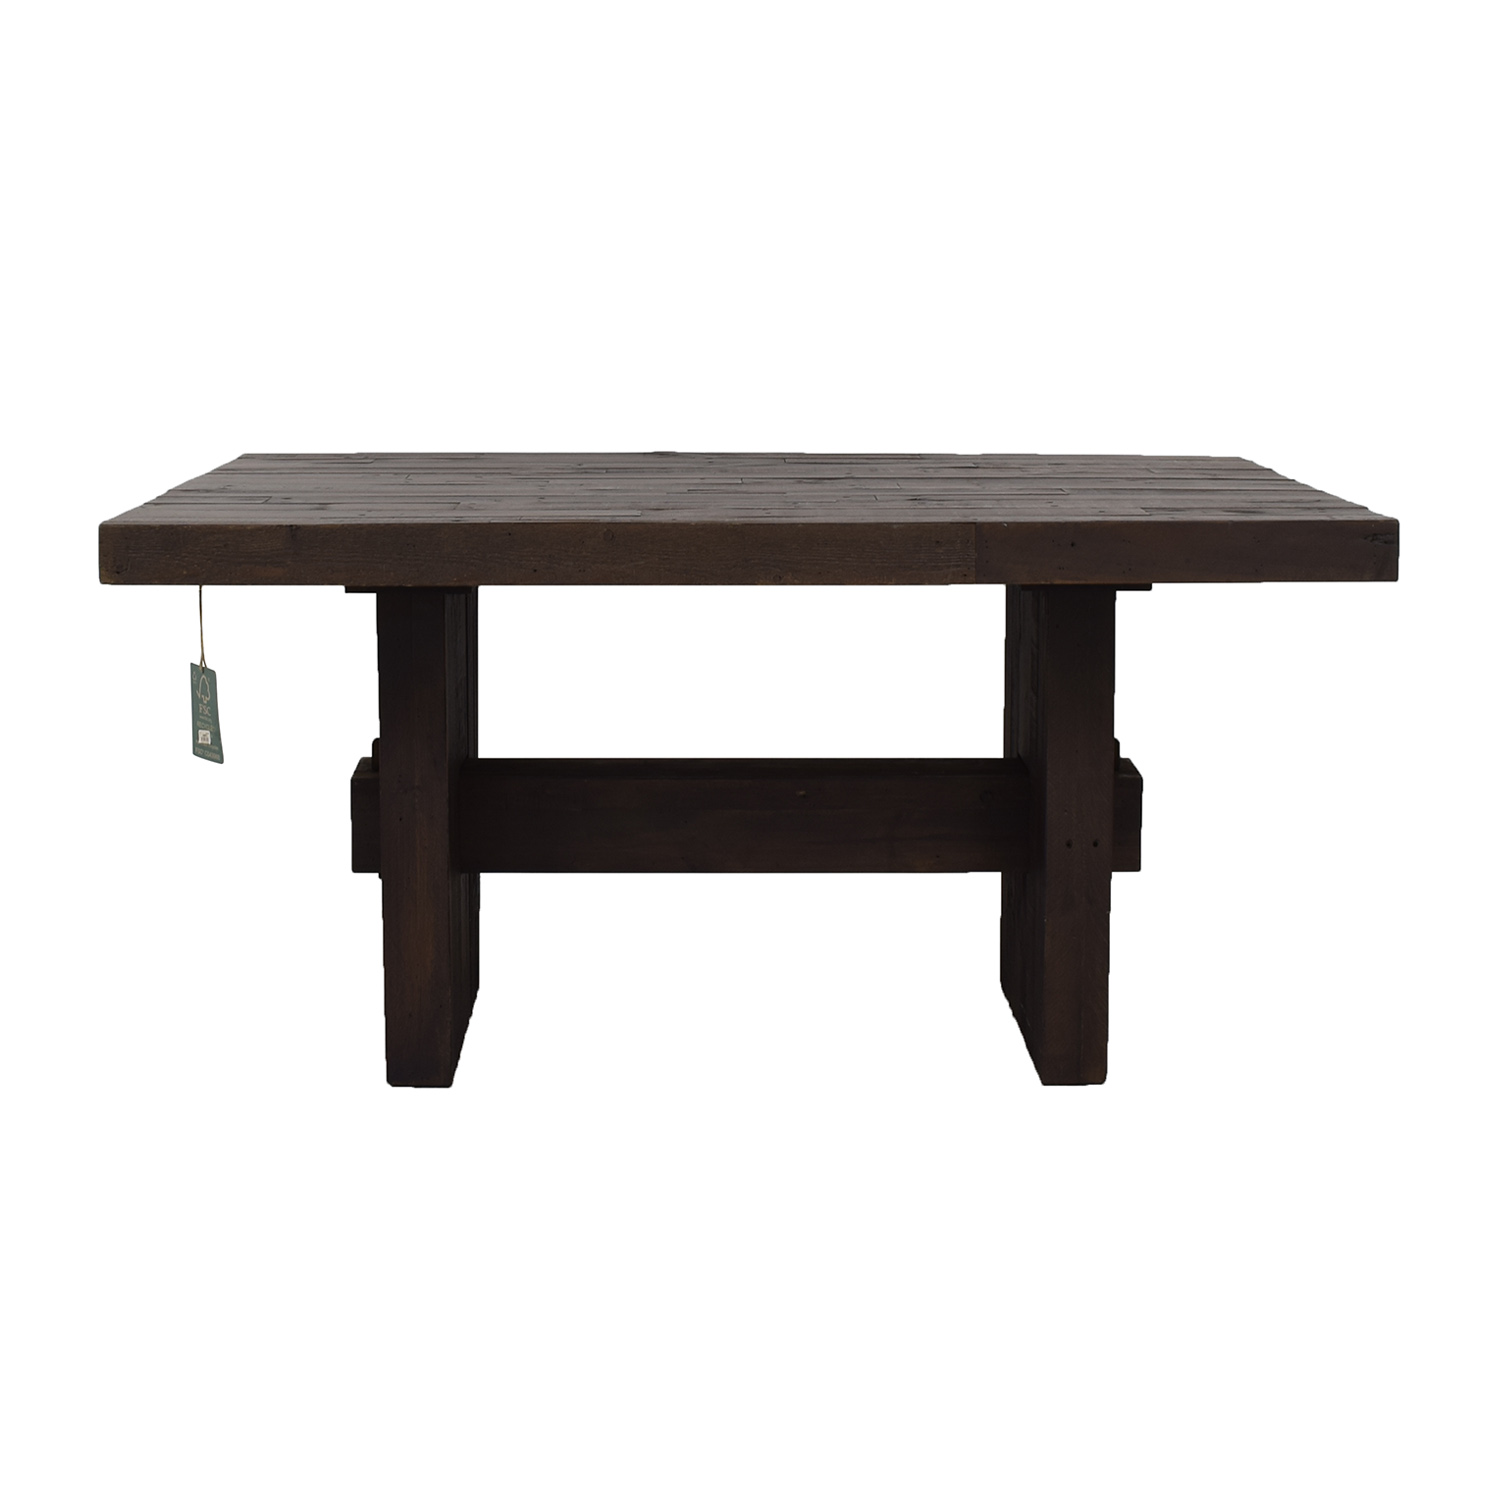 West Elm West Elm Emmerson Reclaimed Wood Dining Table used